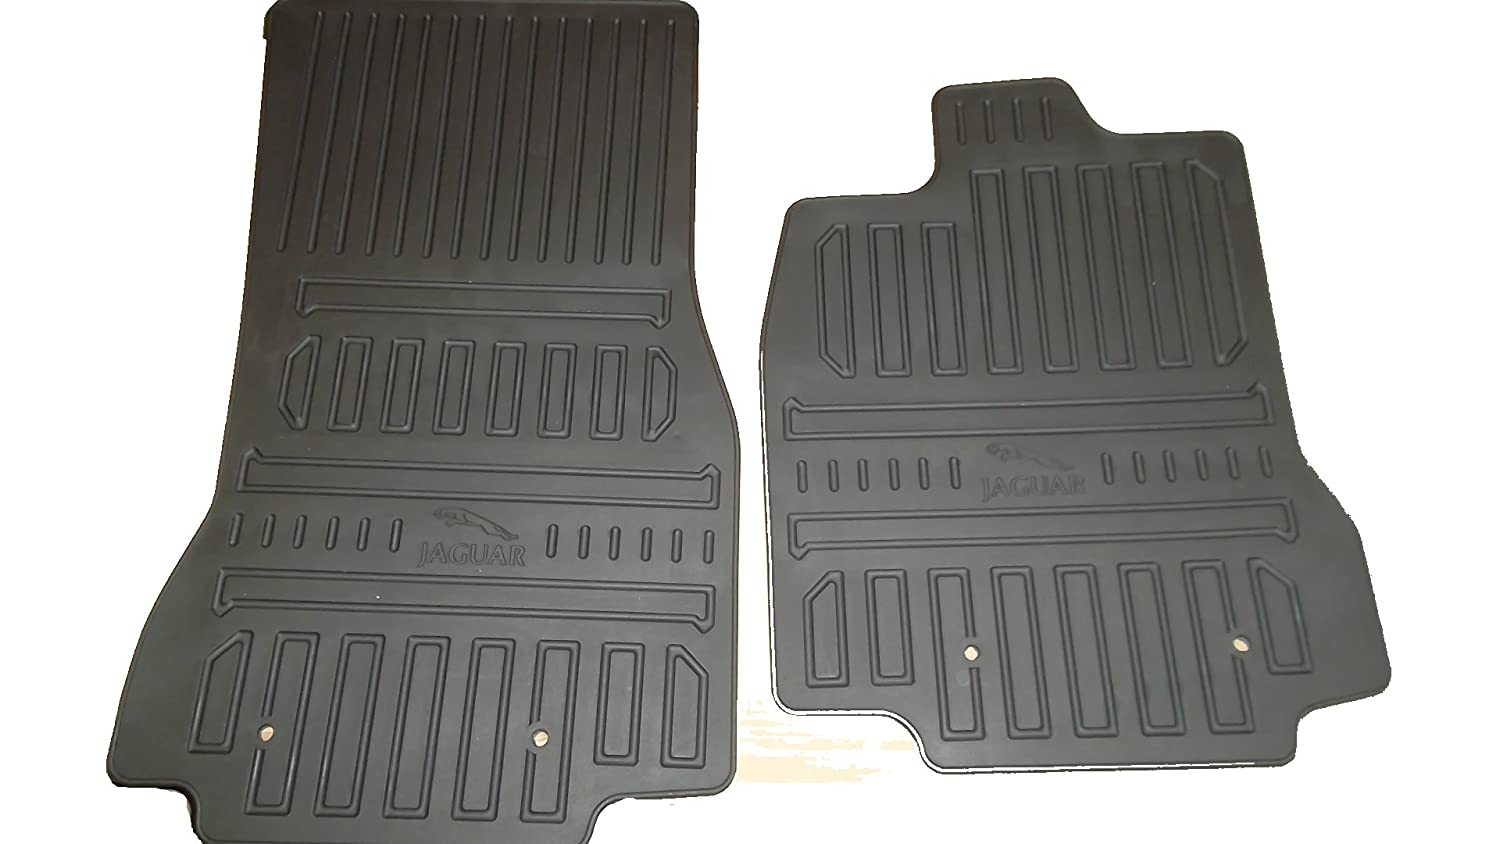 Rubber floor mats for jaguar xf - Rubber Floor Mats For Jaguar Xf 9